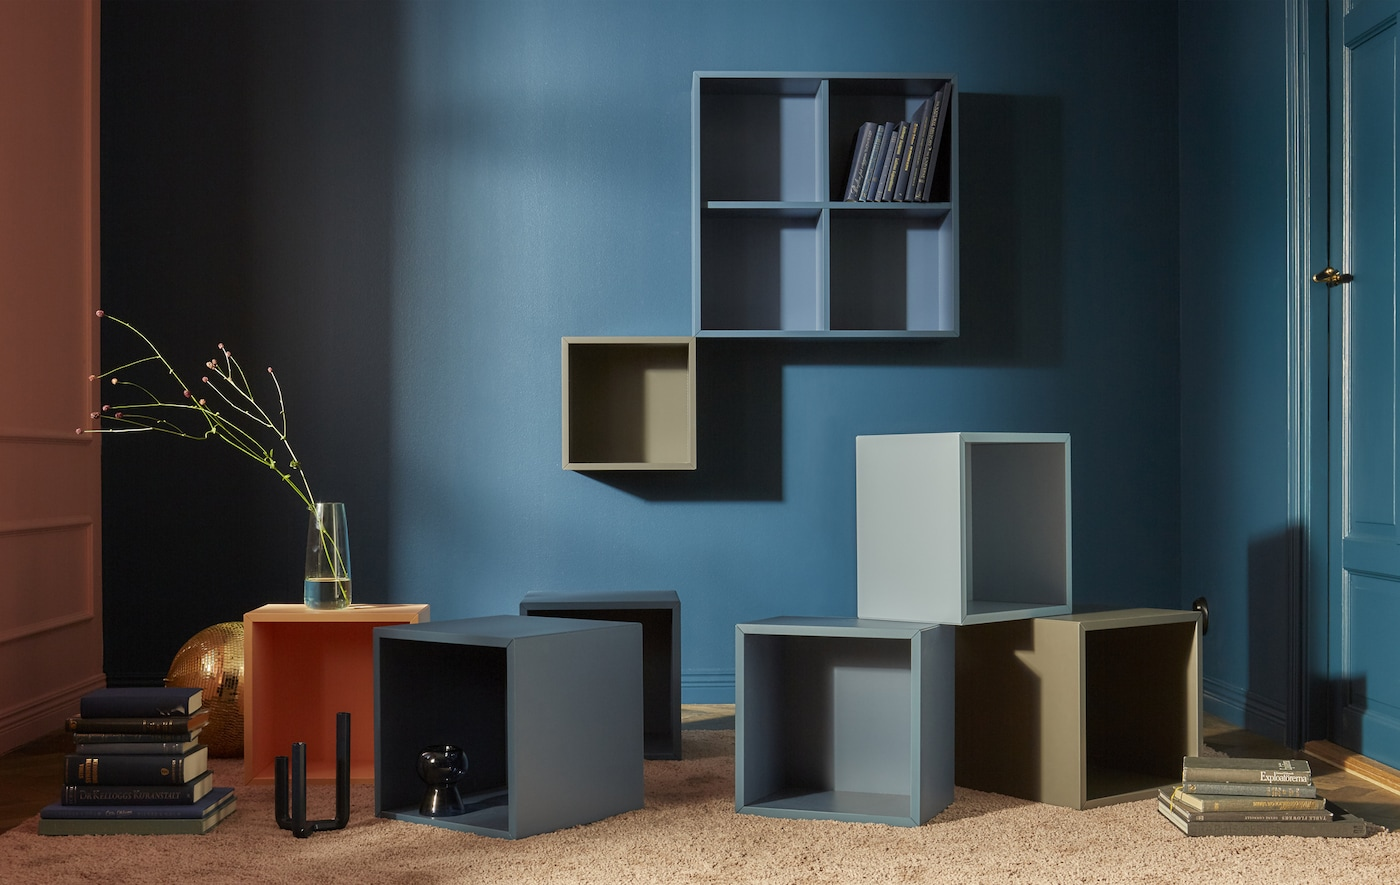 EKET open cabinets from IKEA are modular and work almost like building blocks to meet your needs and style. The wall cabinets come in different depths and colours  like blue and grey with add-ons like doors and legs.